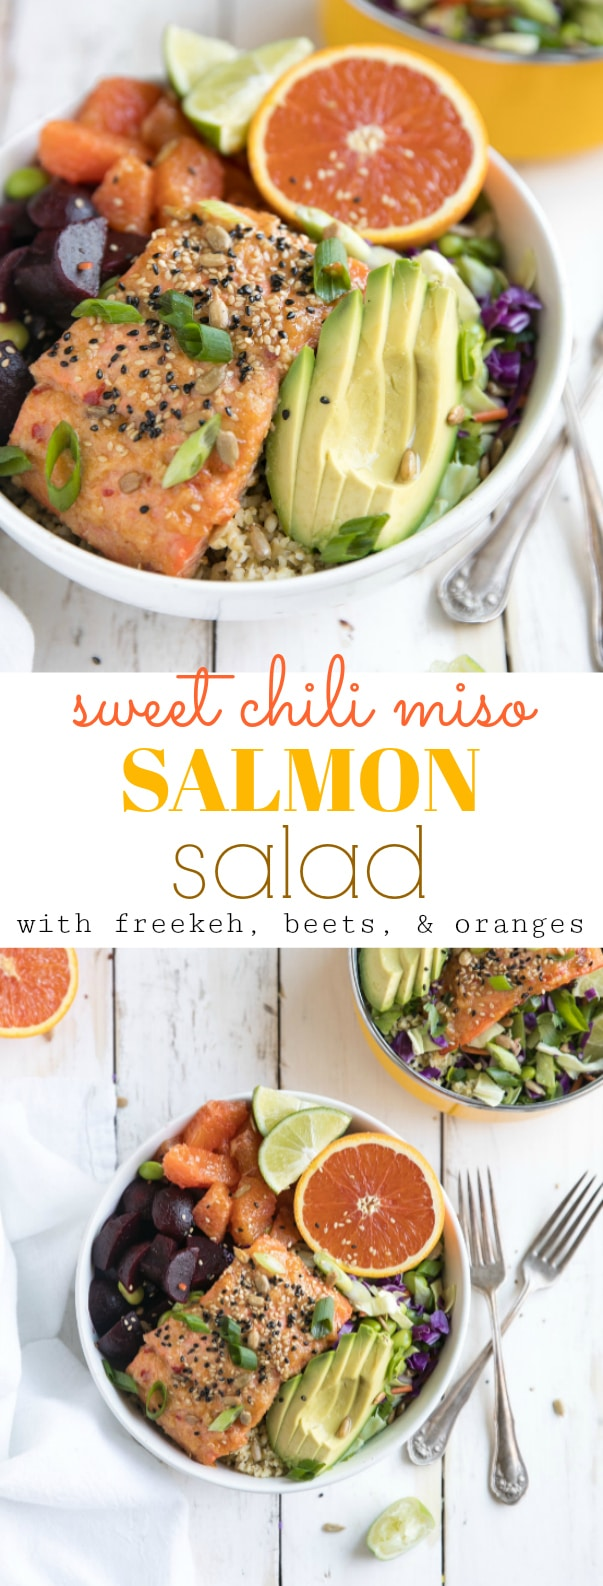 Super healthy foods like freekeh, beets, oranges, and avocado are just part of what make this nutritious 30 minute Sweet Chili Miso Salmon Salad a dinner win any night of the week! via @theforkedspoon #salmon #saladbowl #salad #healthy #30minutemeal #beets #avocado #miso #sweetchilisauce #easyrecipe | For this recipe and more visit, https://theforkedspoon.com/